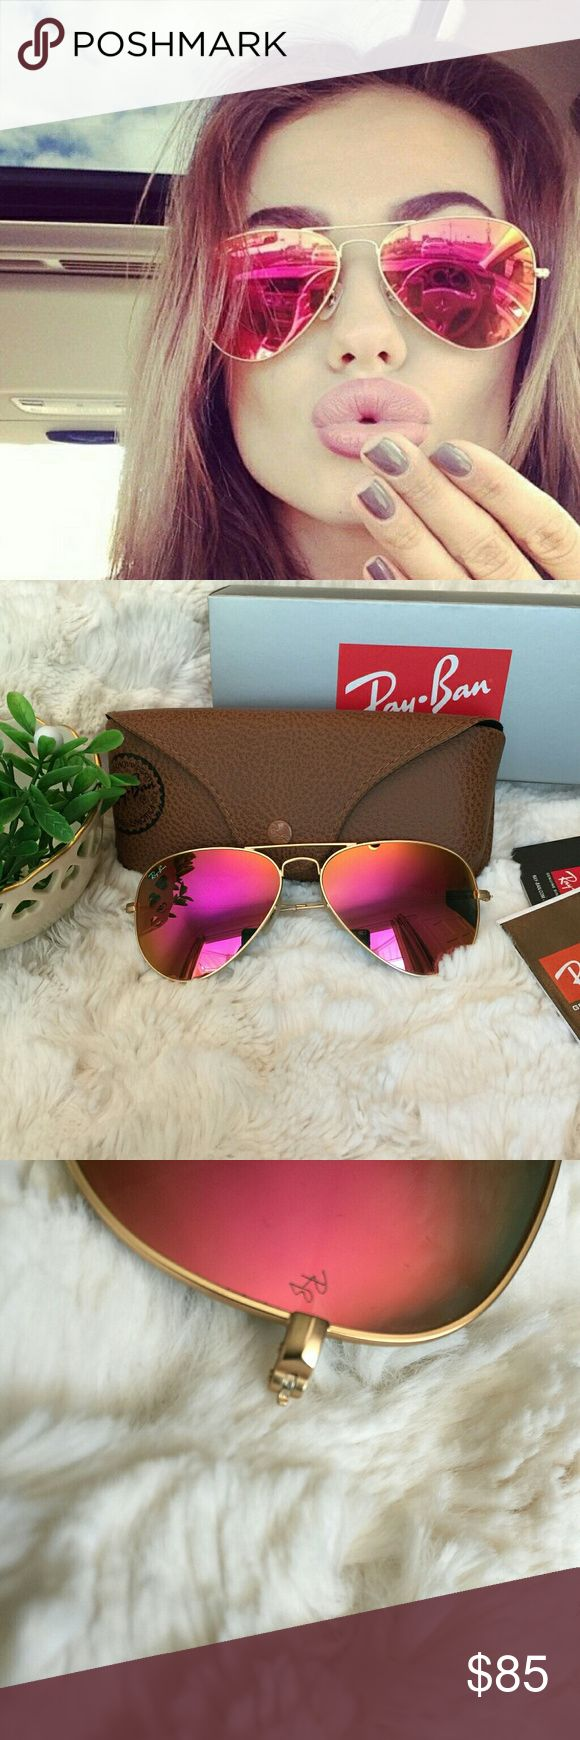 Ray Ban Aviator in Pink Gold RB3025 Authentic ❤️️All my item are 100% Authentic / Real Ray ban ❤️Brand new never used  ❤️️Ray Ban Aviator RB3025❤ lens size 58MM ❤️made in Italy ❤️Frame color Gold ❤️come with case,cloth, booklet and box.  💕Feel free to ask any question💕 Ray-Ban Accessories Glasses